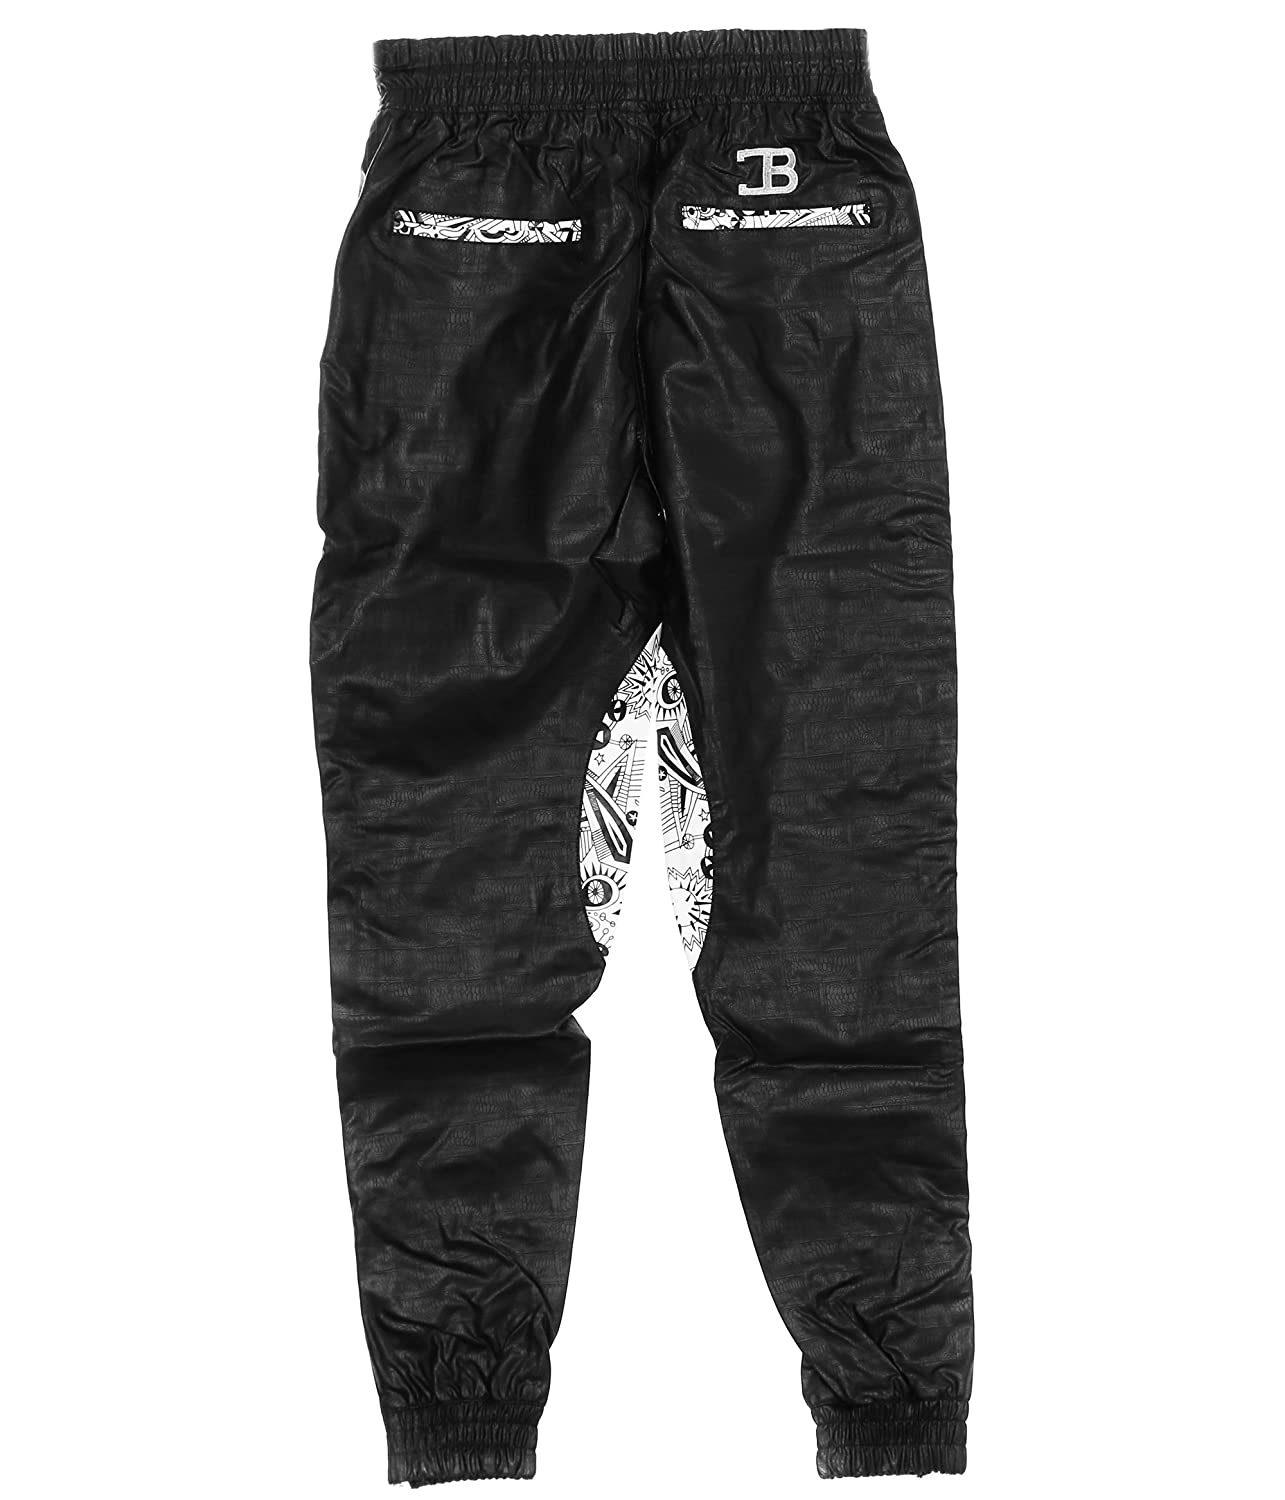 bcb45495810 Coke boys mens embossed faux leather lined jogger pants at amazon mens  clothing store jpg 1285x1500